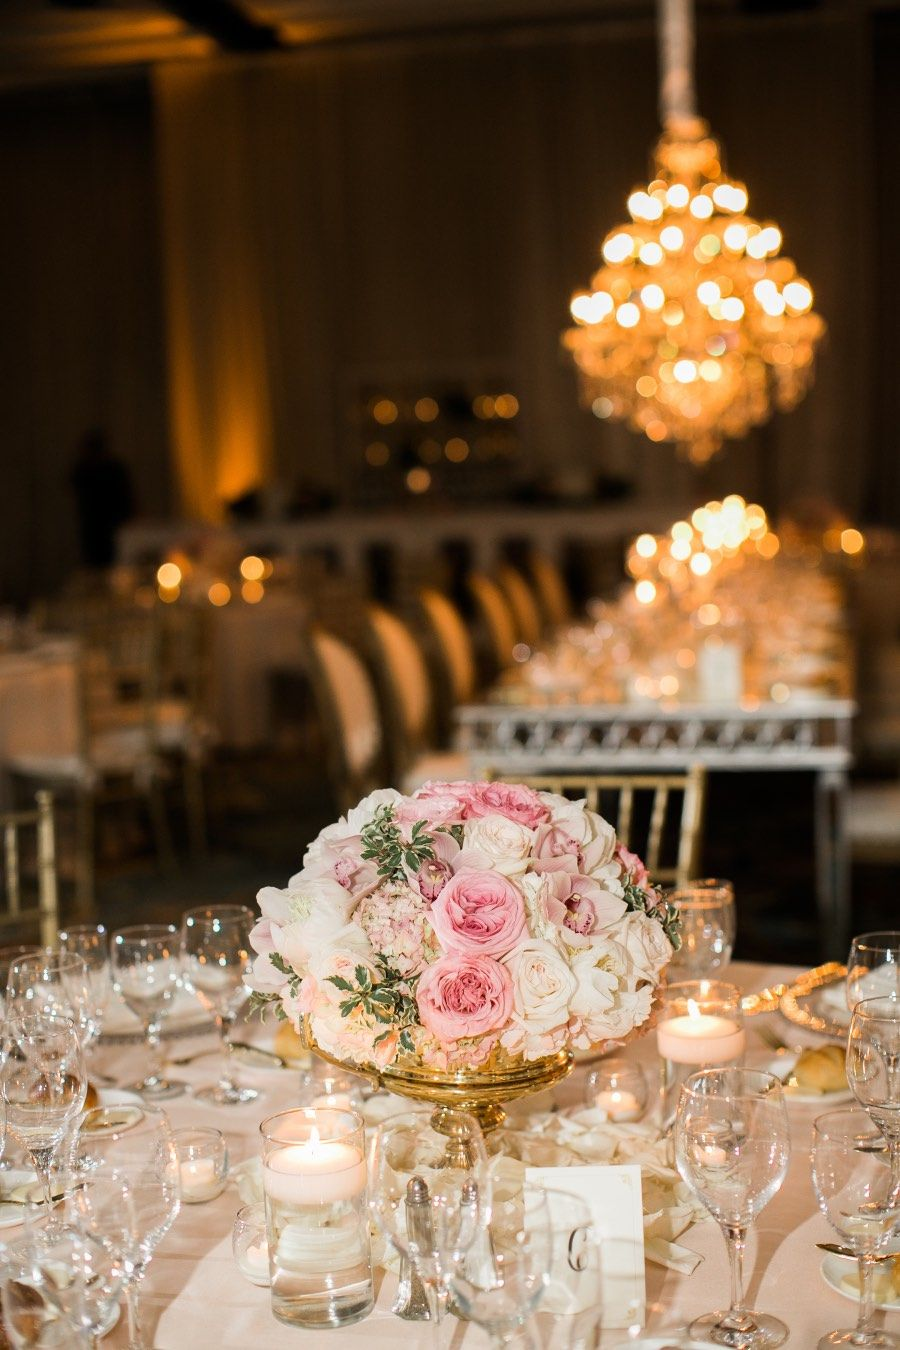 Wedding decorations luxury  Luxury Florida Beach Wedding with Glamorous Gold Details  wedding